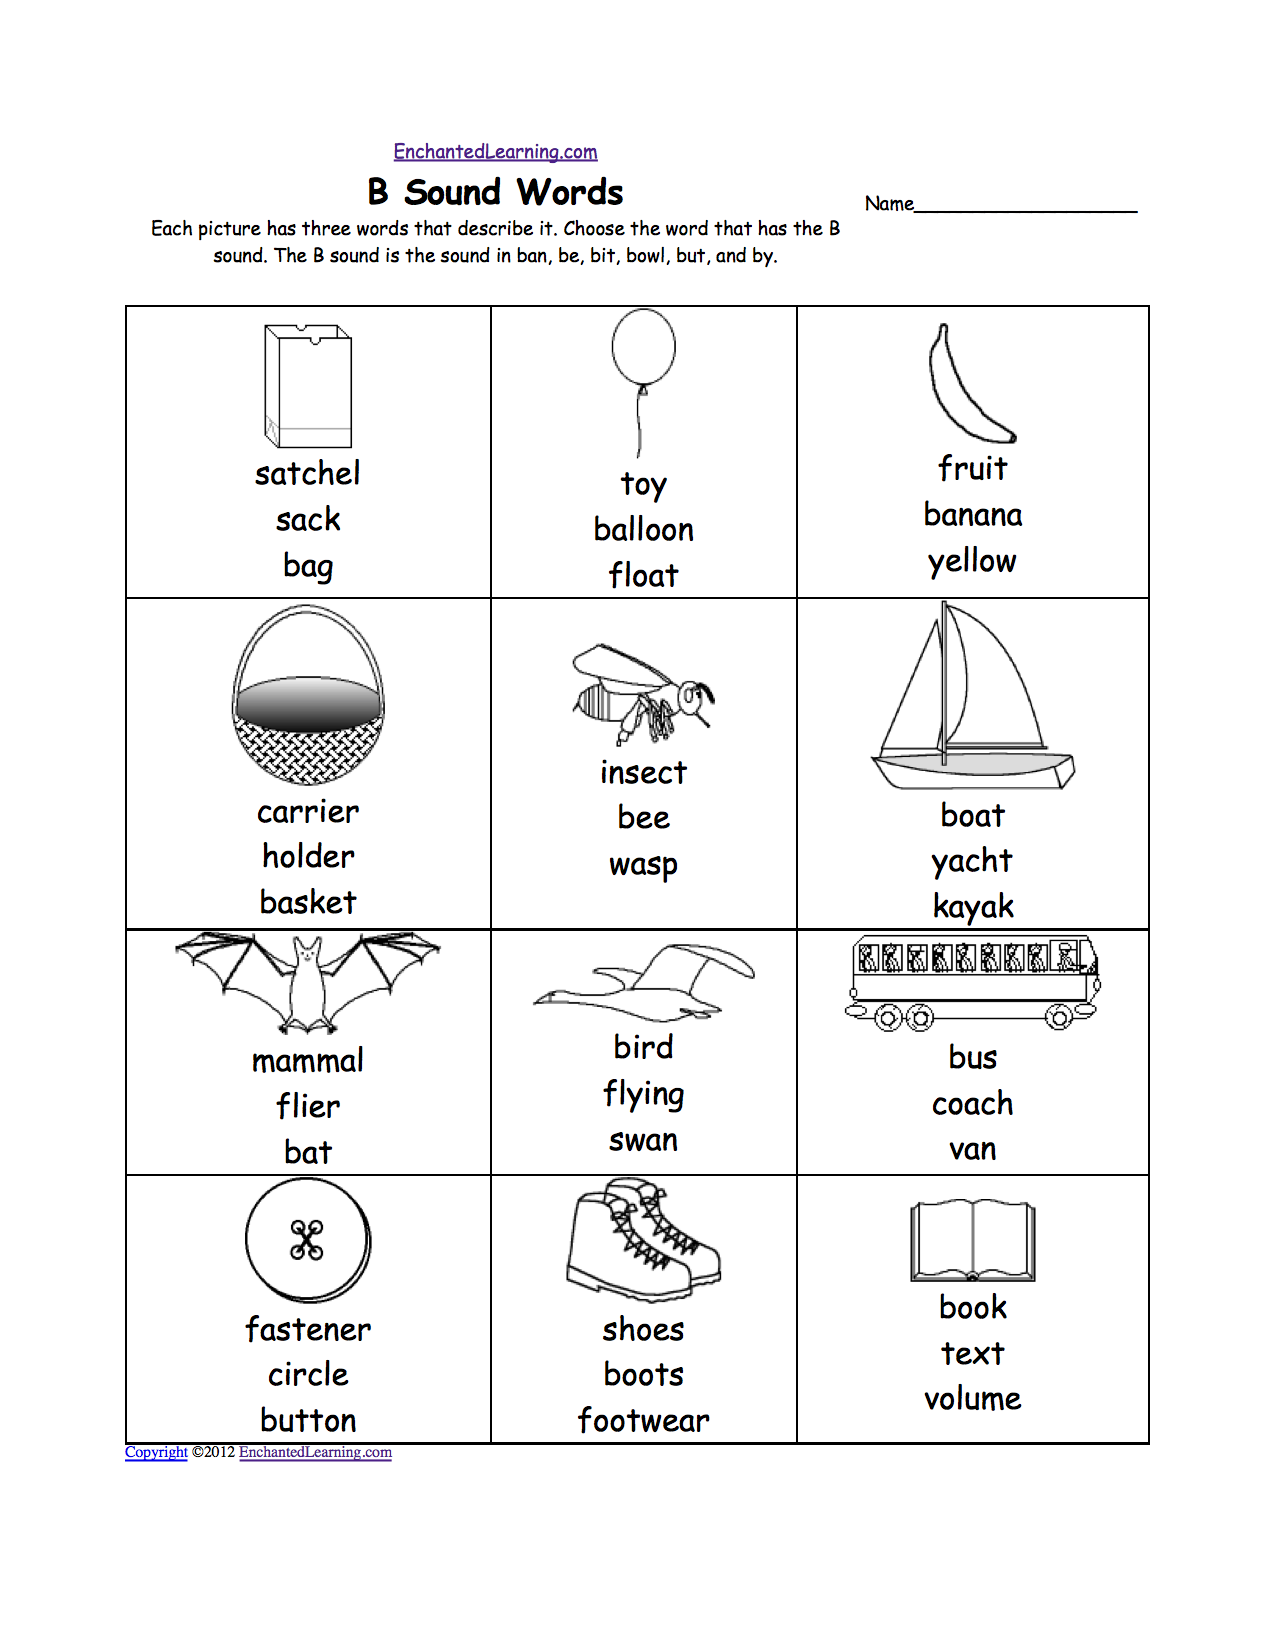 Weirdmailus  Stunning Phonics Worksheets Multiple Choice Worksheets To Print  With Fetching Quotbquot Sound Phonics Worksheet Multiple Choice Each Picture Has Three Words That Describe It Choose The Word That Has A Quotbquot Sound The Quotbquot Sound Is The Sound  With Beauteous Cursive Worksheets Printable Also Preschool Letter A Worksheets In Addition Nuclear Power Plant Diagram Worksheet And Protien Synthesis Worksheet As Well As Volumes Of Revolution Worksheet Additionally Volume And Surface Area Of A Sphere Worksheet From Enchantedlearningcom With Weirdmailus  Fetching Phonics Worksheets Multiple Choice Worksheets To Print  With Beauteous Quotbquot Sound Phonics Worksheet Multiple Choice Each Picture Has Three Words That Describe It Choose The Word That Has A Quotbquot Sound The Quotbquot Sound Is The Sound  And Stunning Cursive Worksheets Printable Also Preschool Letter A Worksheets In Addition Nuclear Power Plant Diagram Worksheet From Enchantedlearningcom